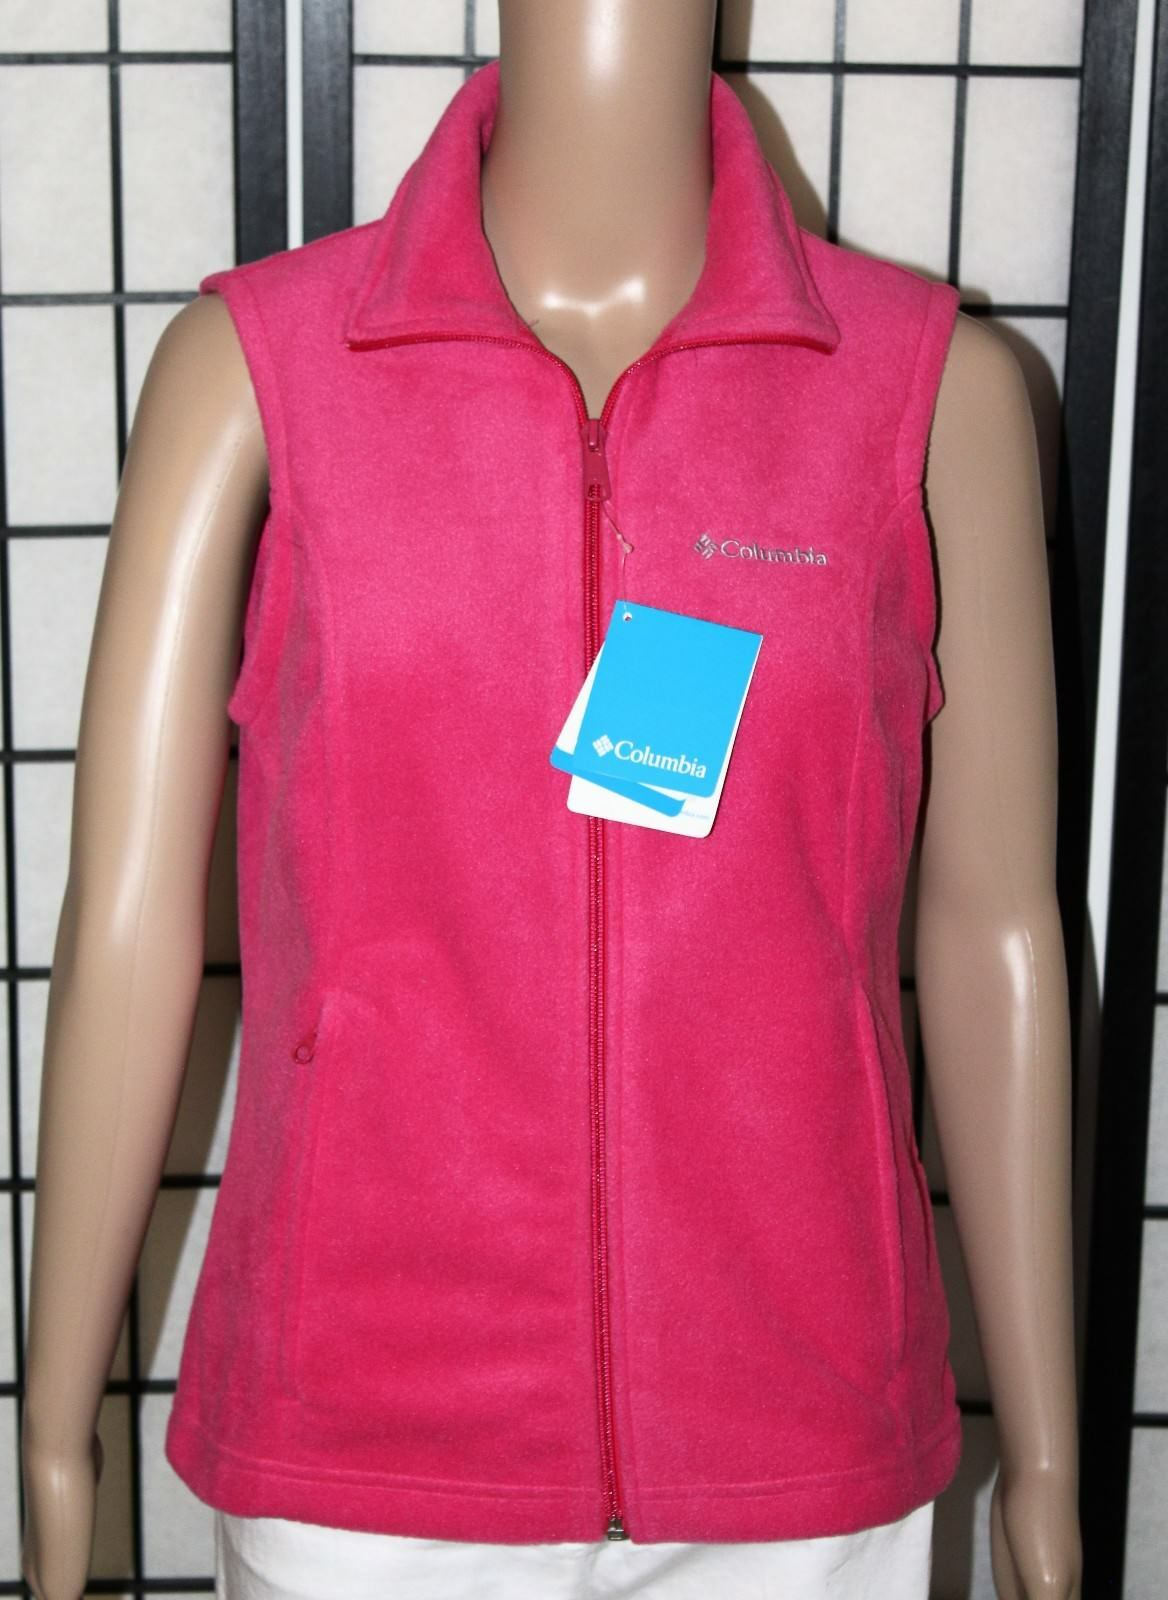 NWT COLUMBIA Sportswear Benton Springs Women's XS Full Zip Pink Fleece Vest NEW